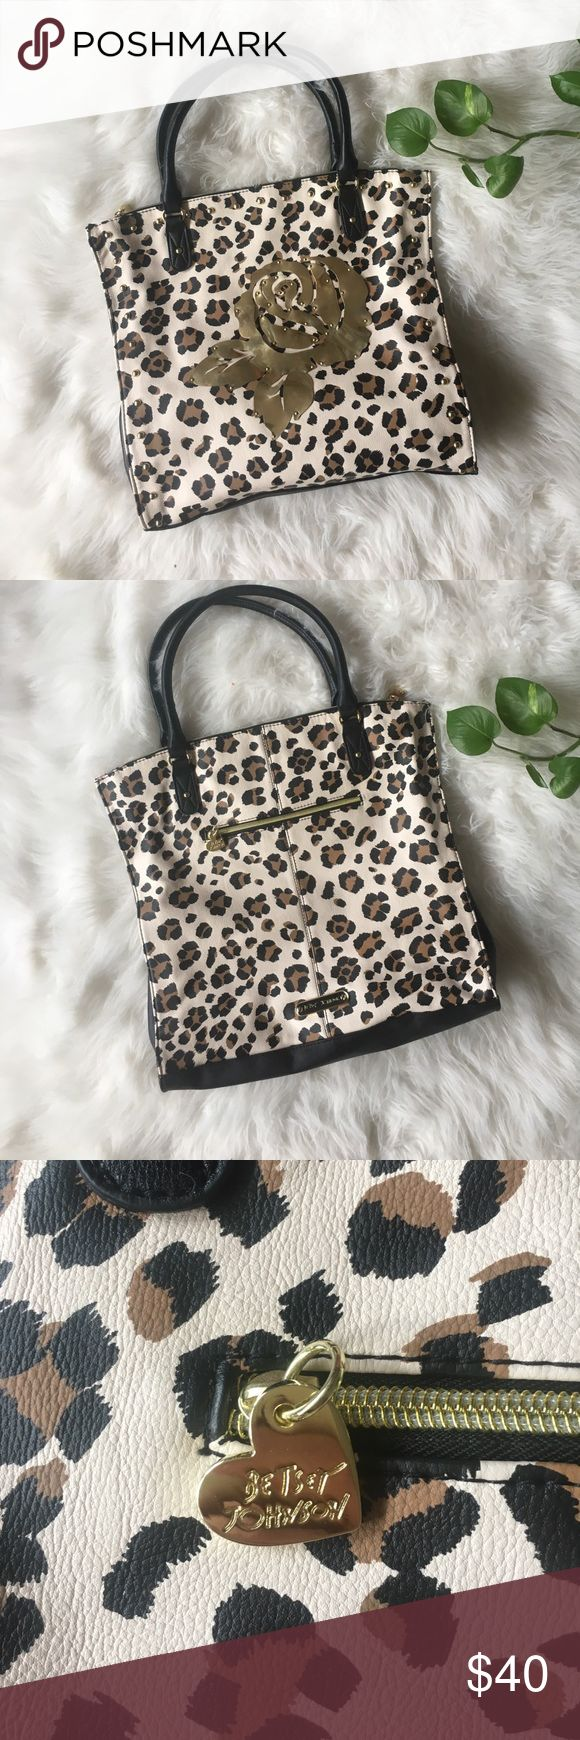 """Betsey Johnson clear to me tote bag Beautiful animal print tote bag with gold rose detail. Very spacious 15"""" by 17"""" tote with lots of pockets and compartments. Even a hook for your keys! Absolutely stuffing. Perfect inside and out, has never been used. From a smoke free home. Betsey Johnson Bags Totes"""